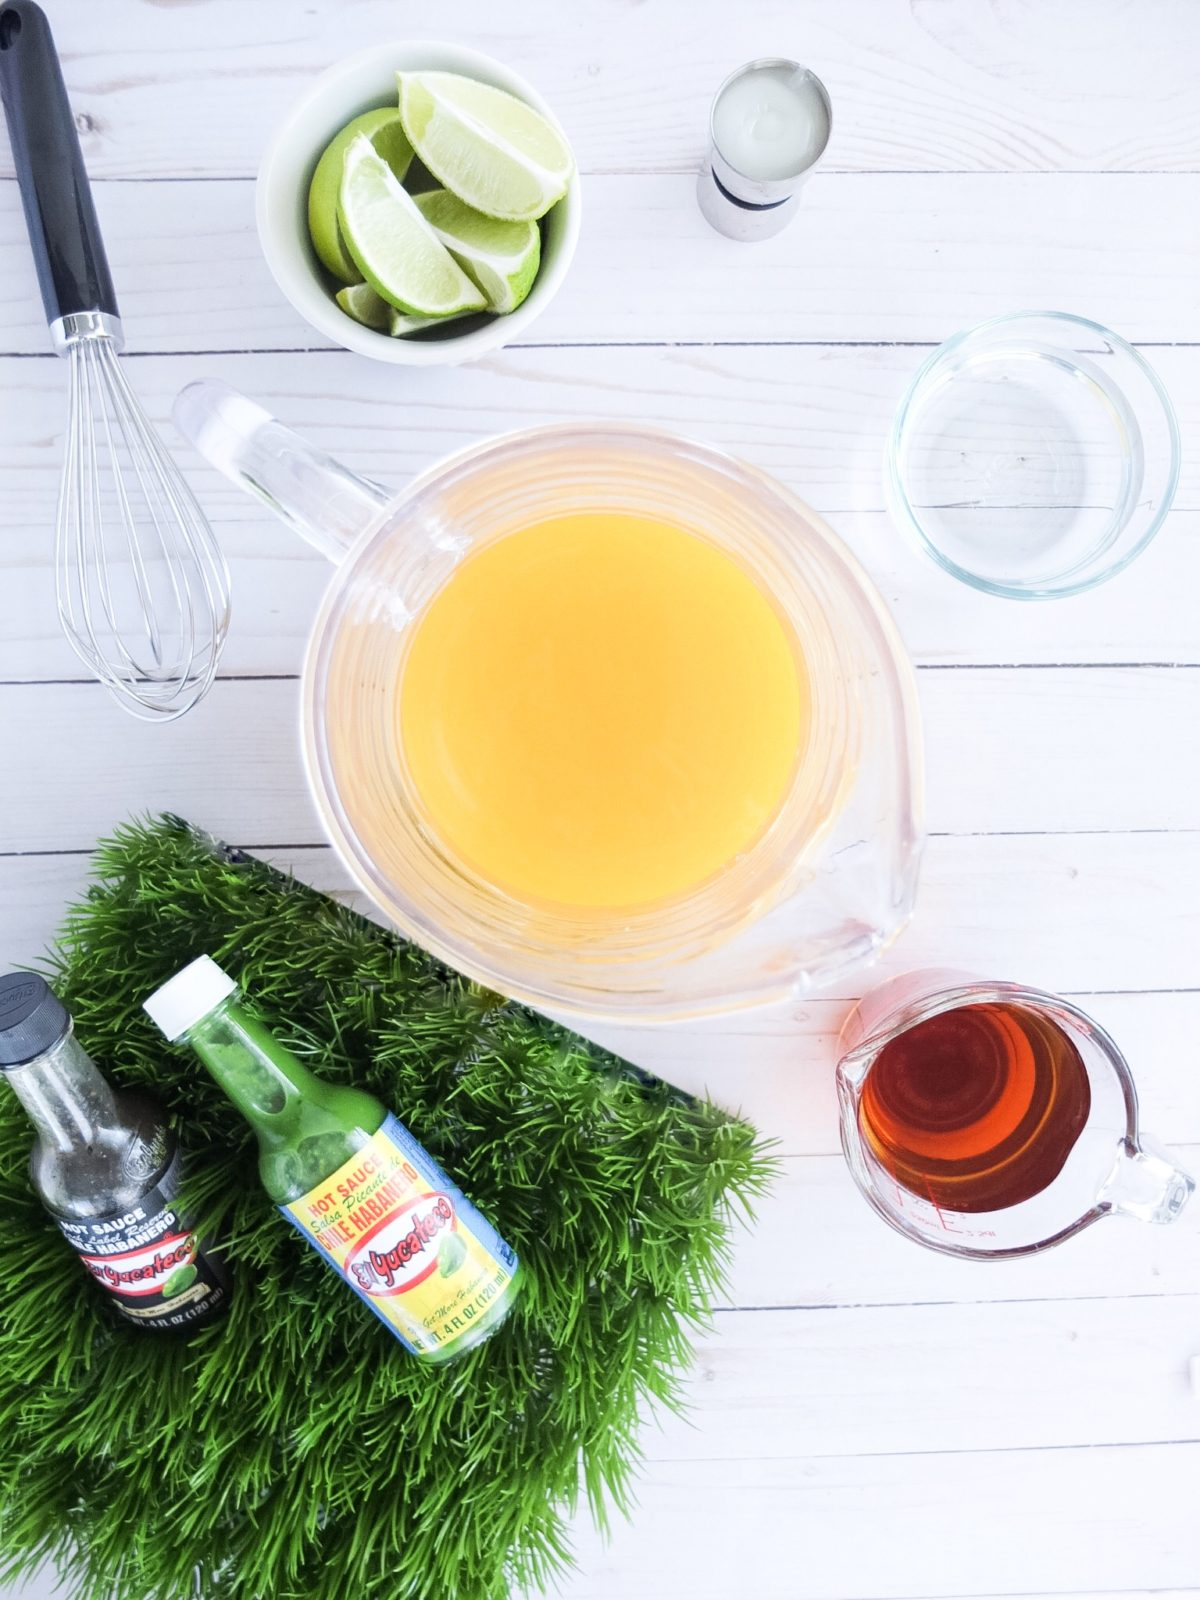 Msg 4 21+. An easy party cocktail for the Big Game! This football cocktail is a mix of flavorful El Yucateco® Green Chile Habanero flavor and a classic tiki drink! Uses pineapple juice, lime juice, dark rum, orange curacao, and cream de coconut! // www.ElleTalk.com #ad #KingofFlavor